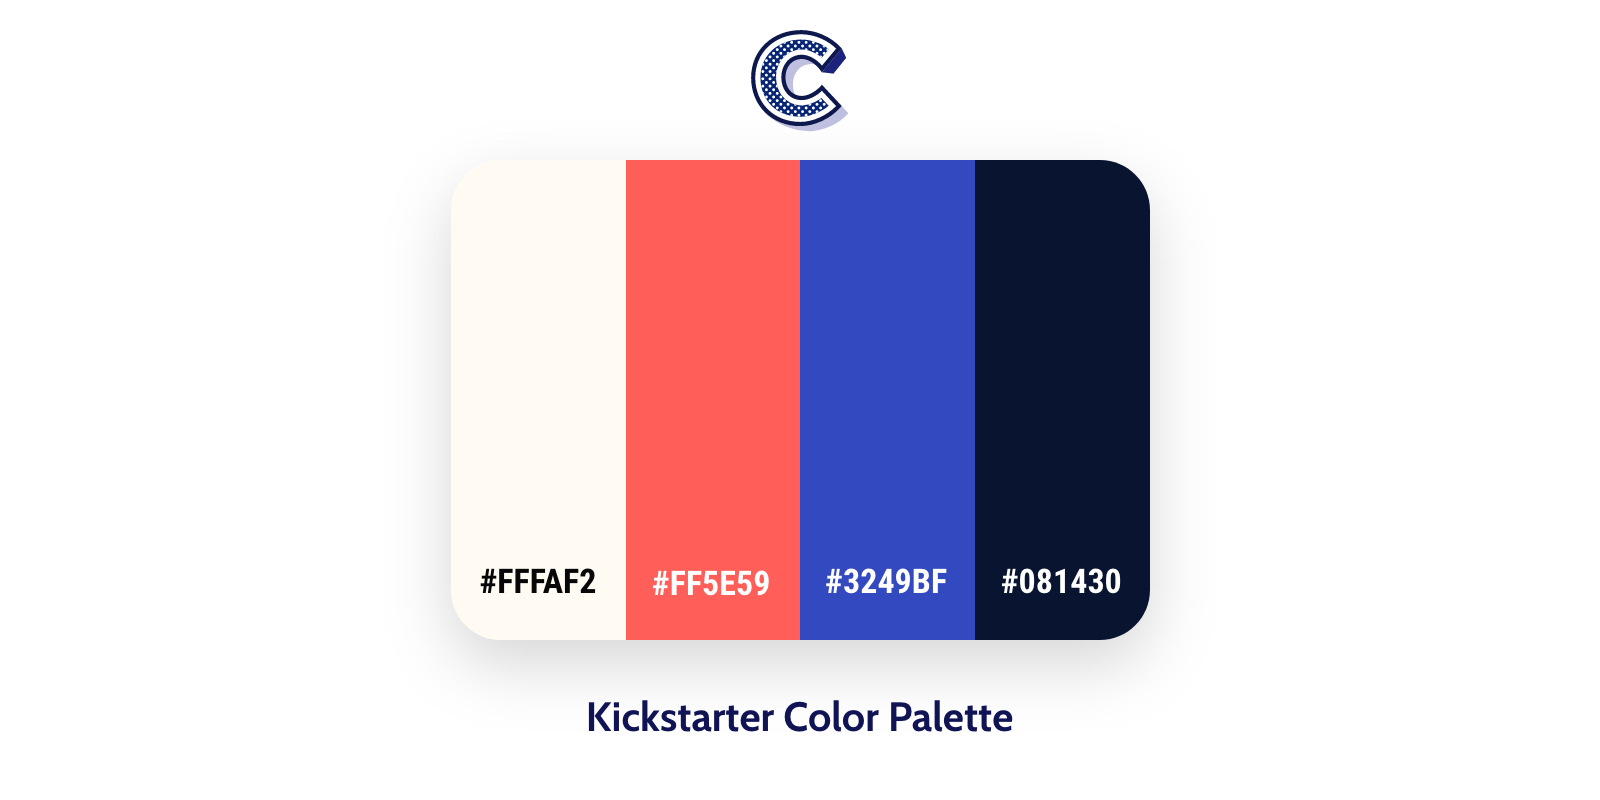 the featured image of kickstarter color palette